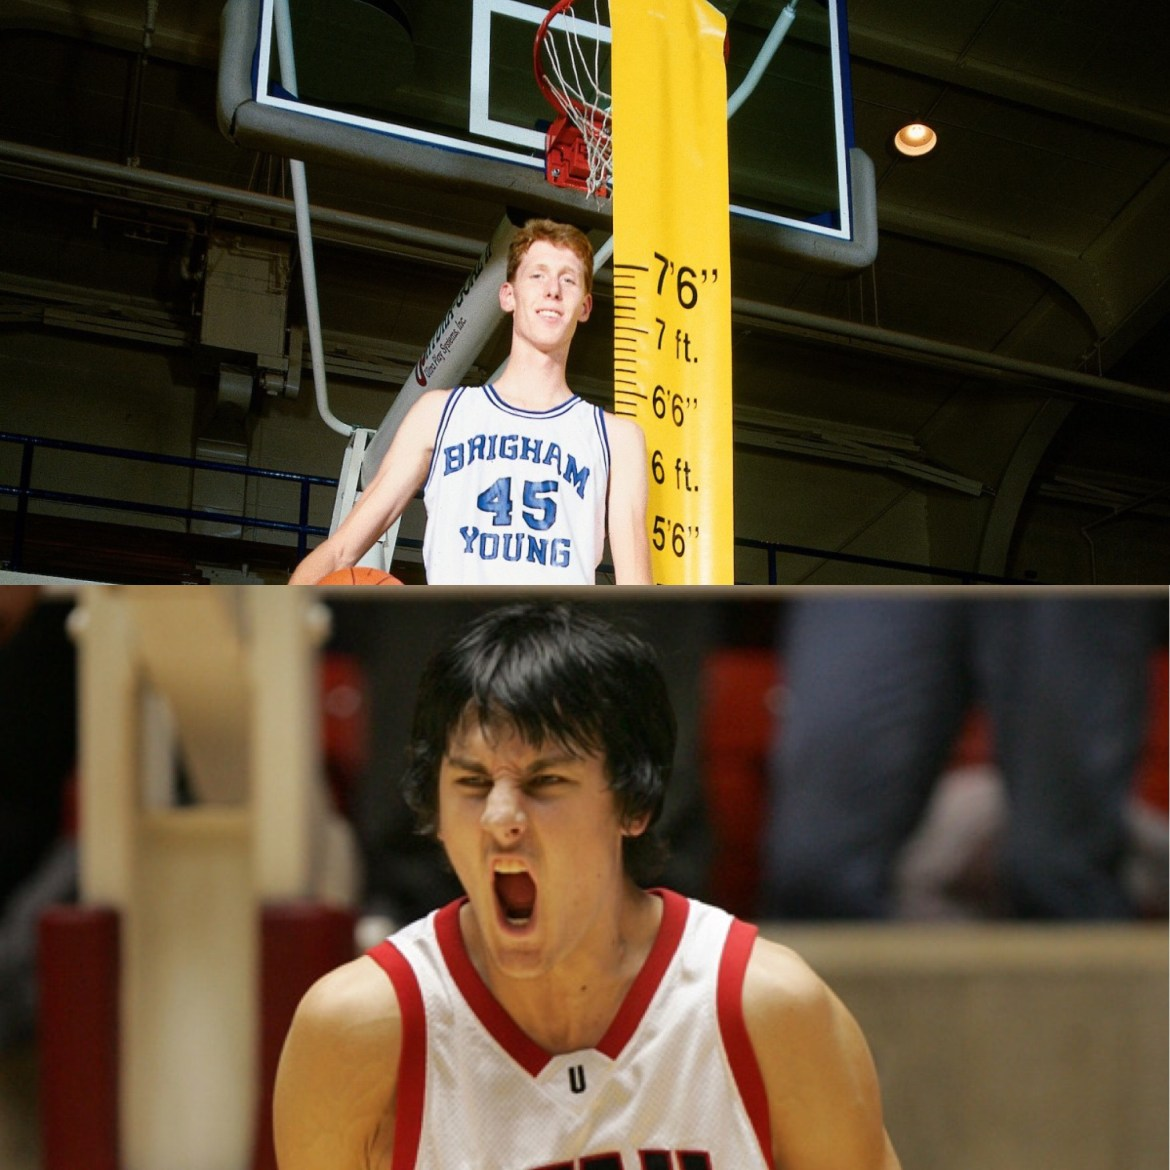 Utah March Madness: 6 Andrew Bogut vs 11 Shawn Bradley